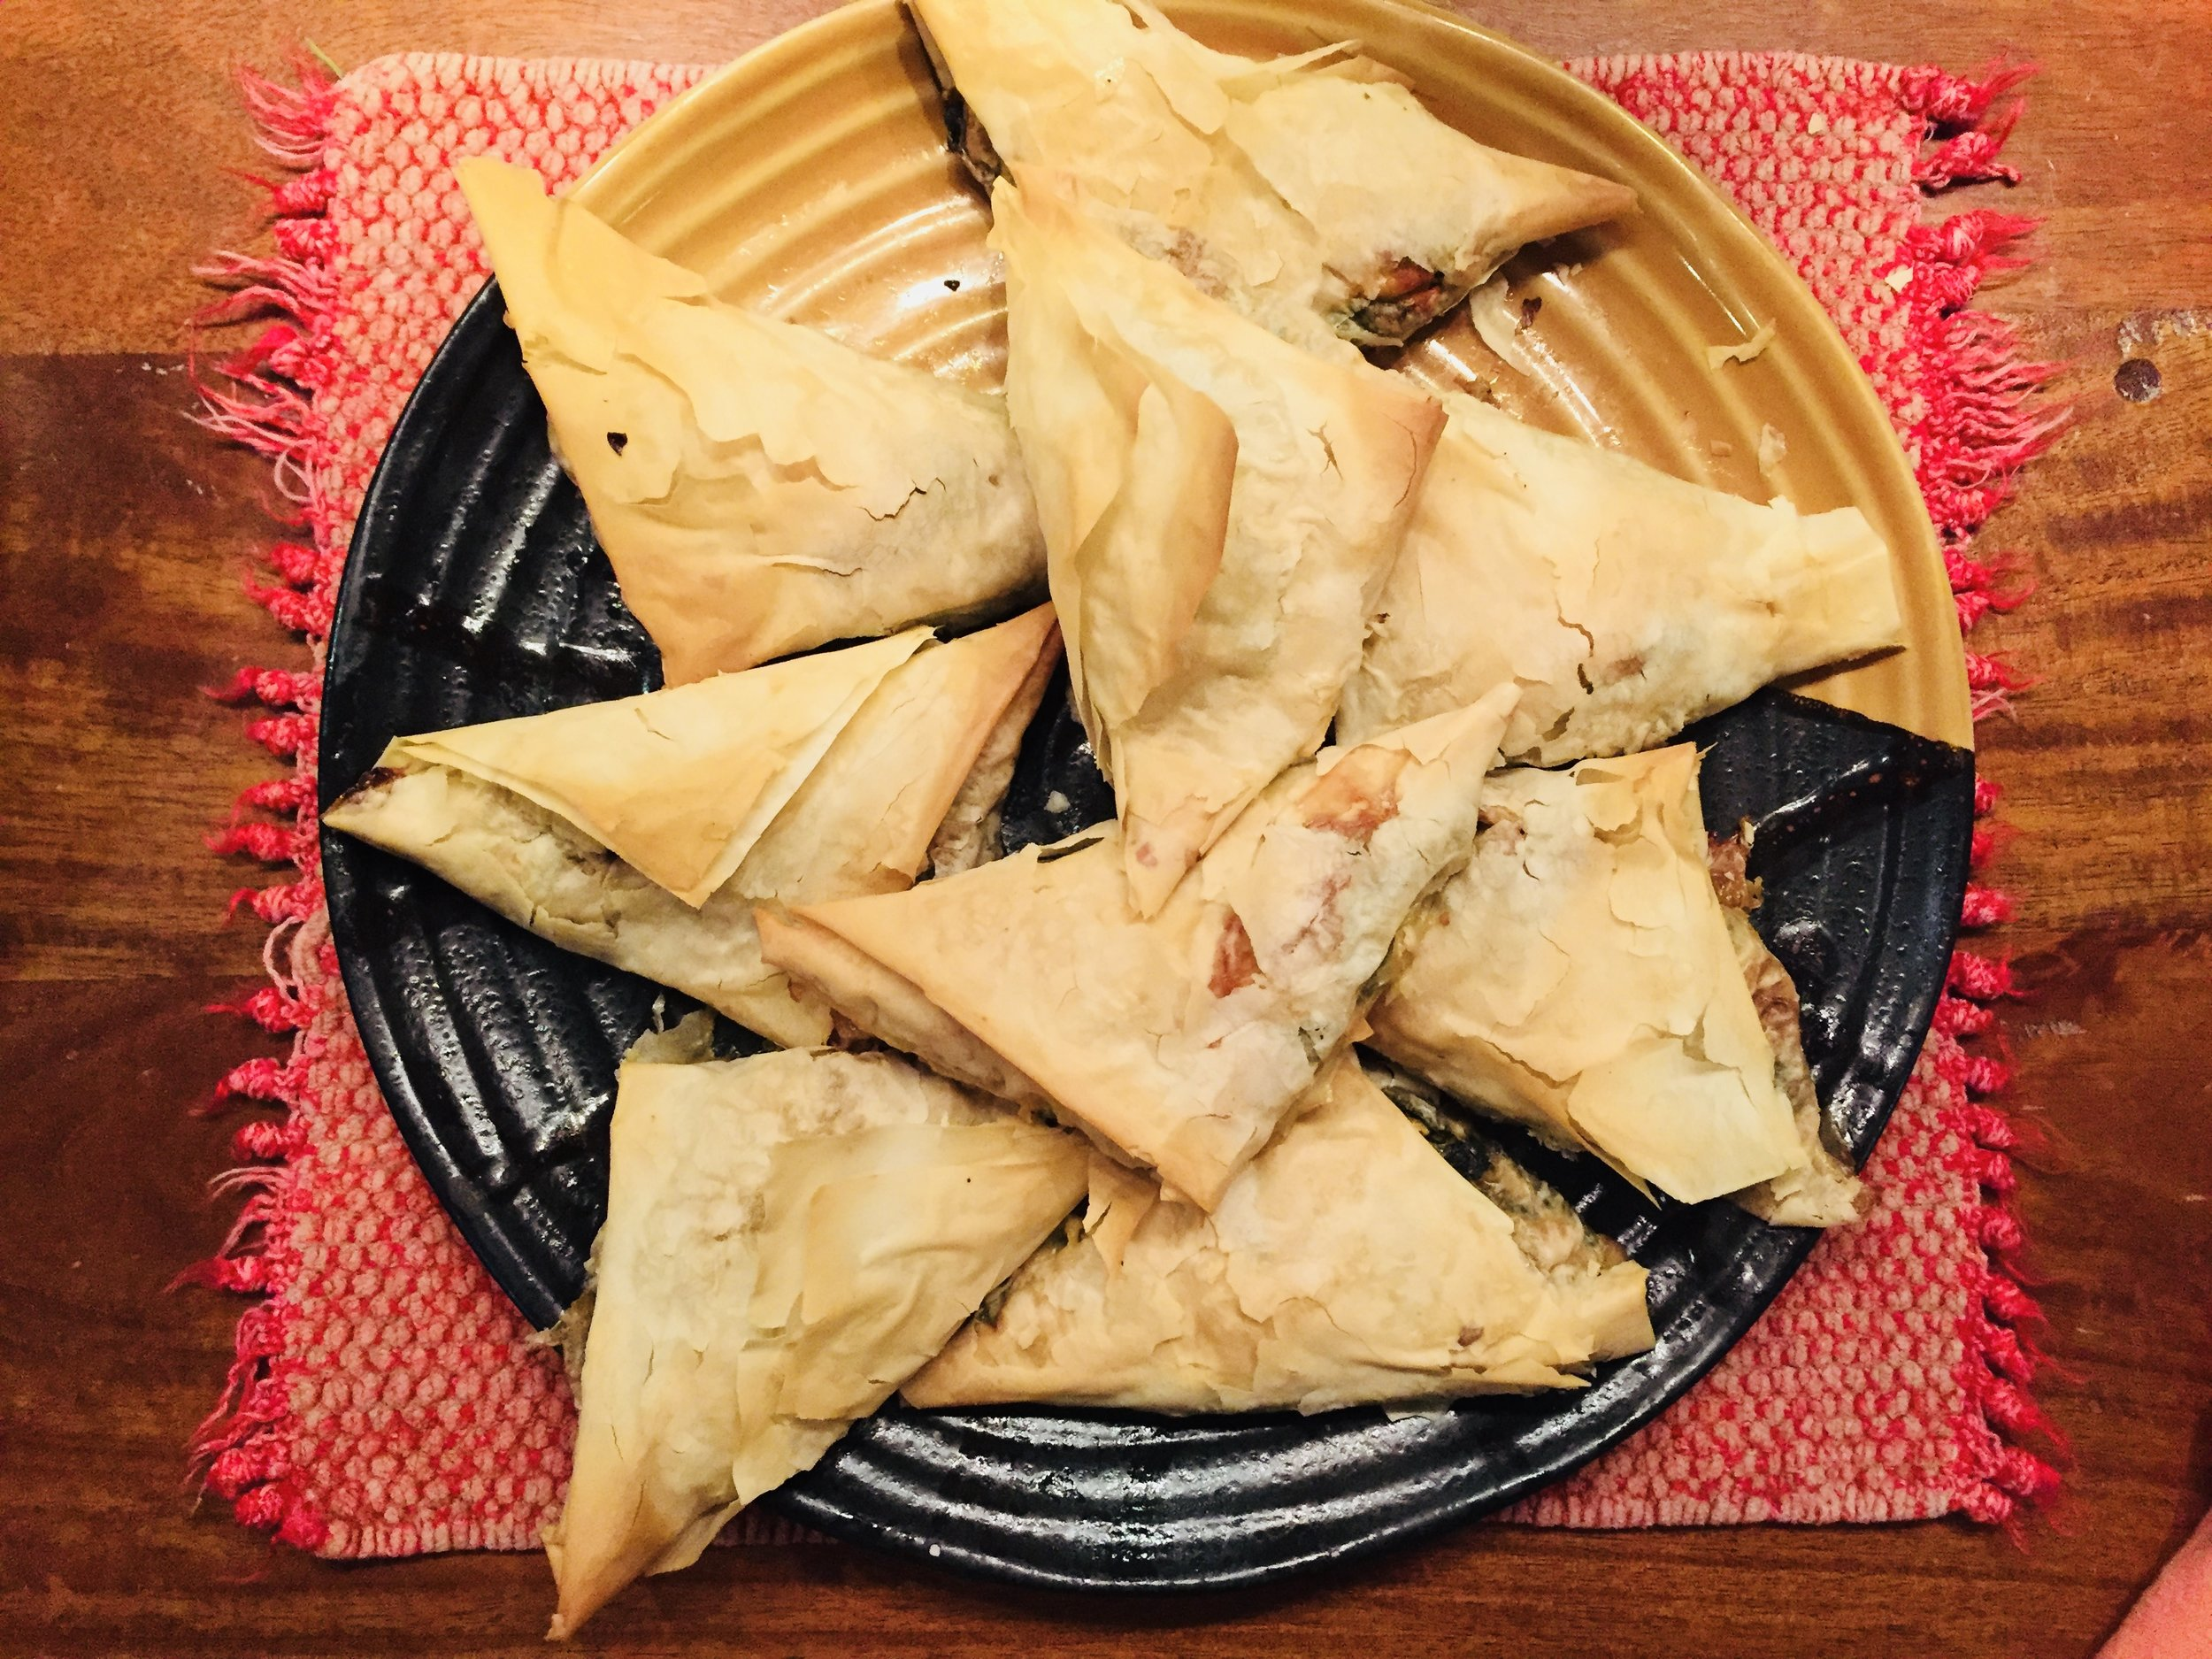 A healthier Spanakopita – more spinach, less oil and dough